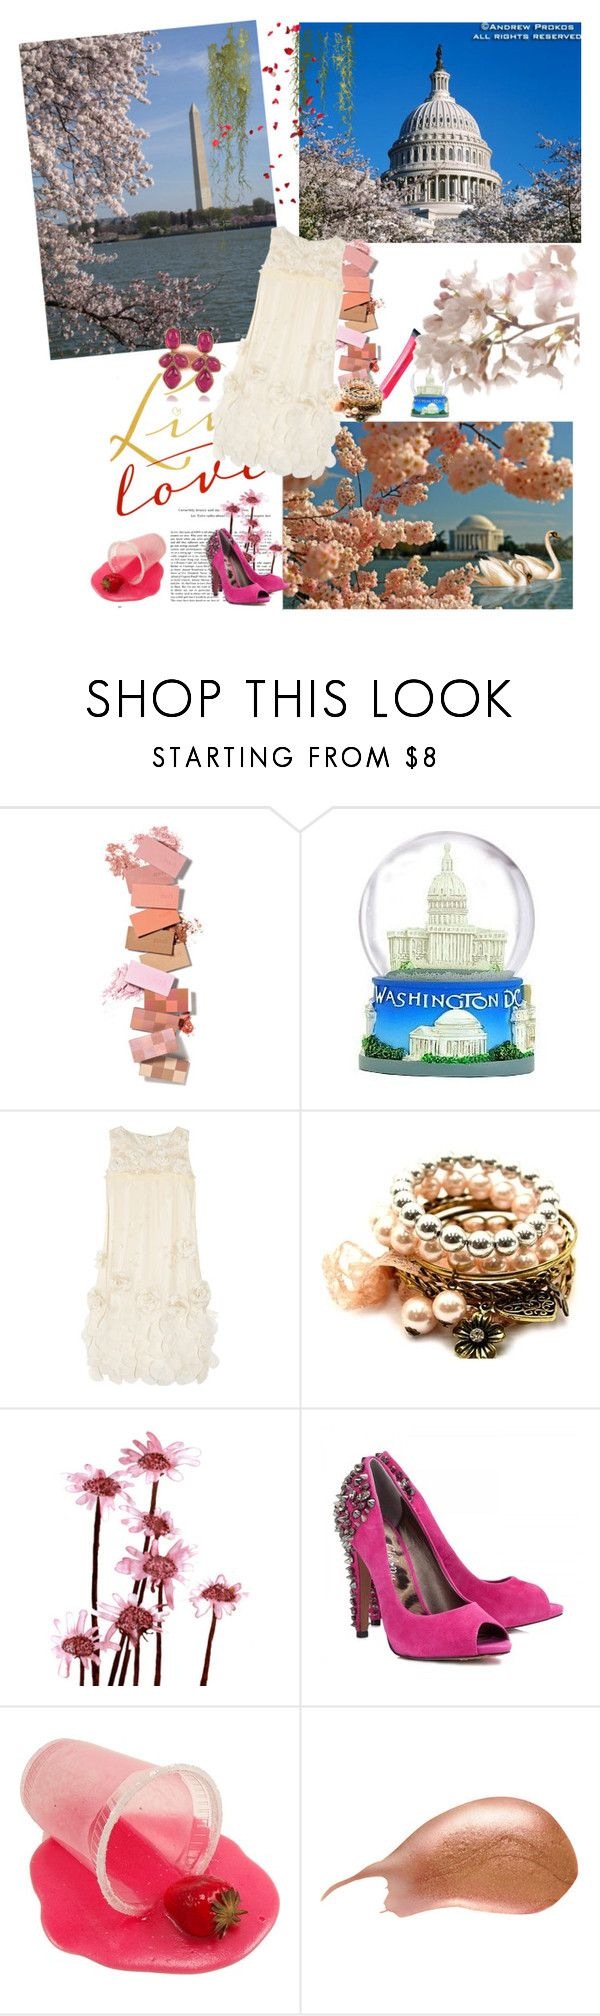 """Washington..."" by jasna ❤ liked on Polyvore featuring DC Shoes, Anna Sui, Fantasy Jewelry Box, Sam Edelman, Hourglass Cosmetics and Oscar de la Renta"